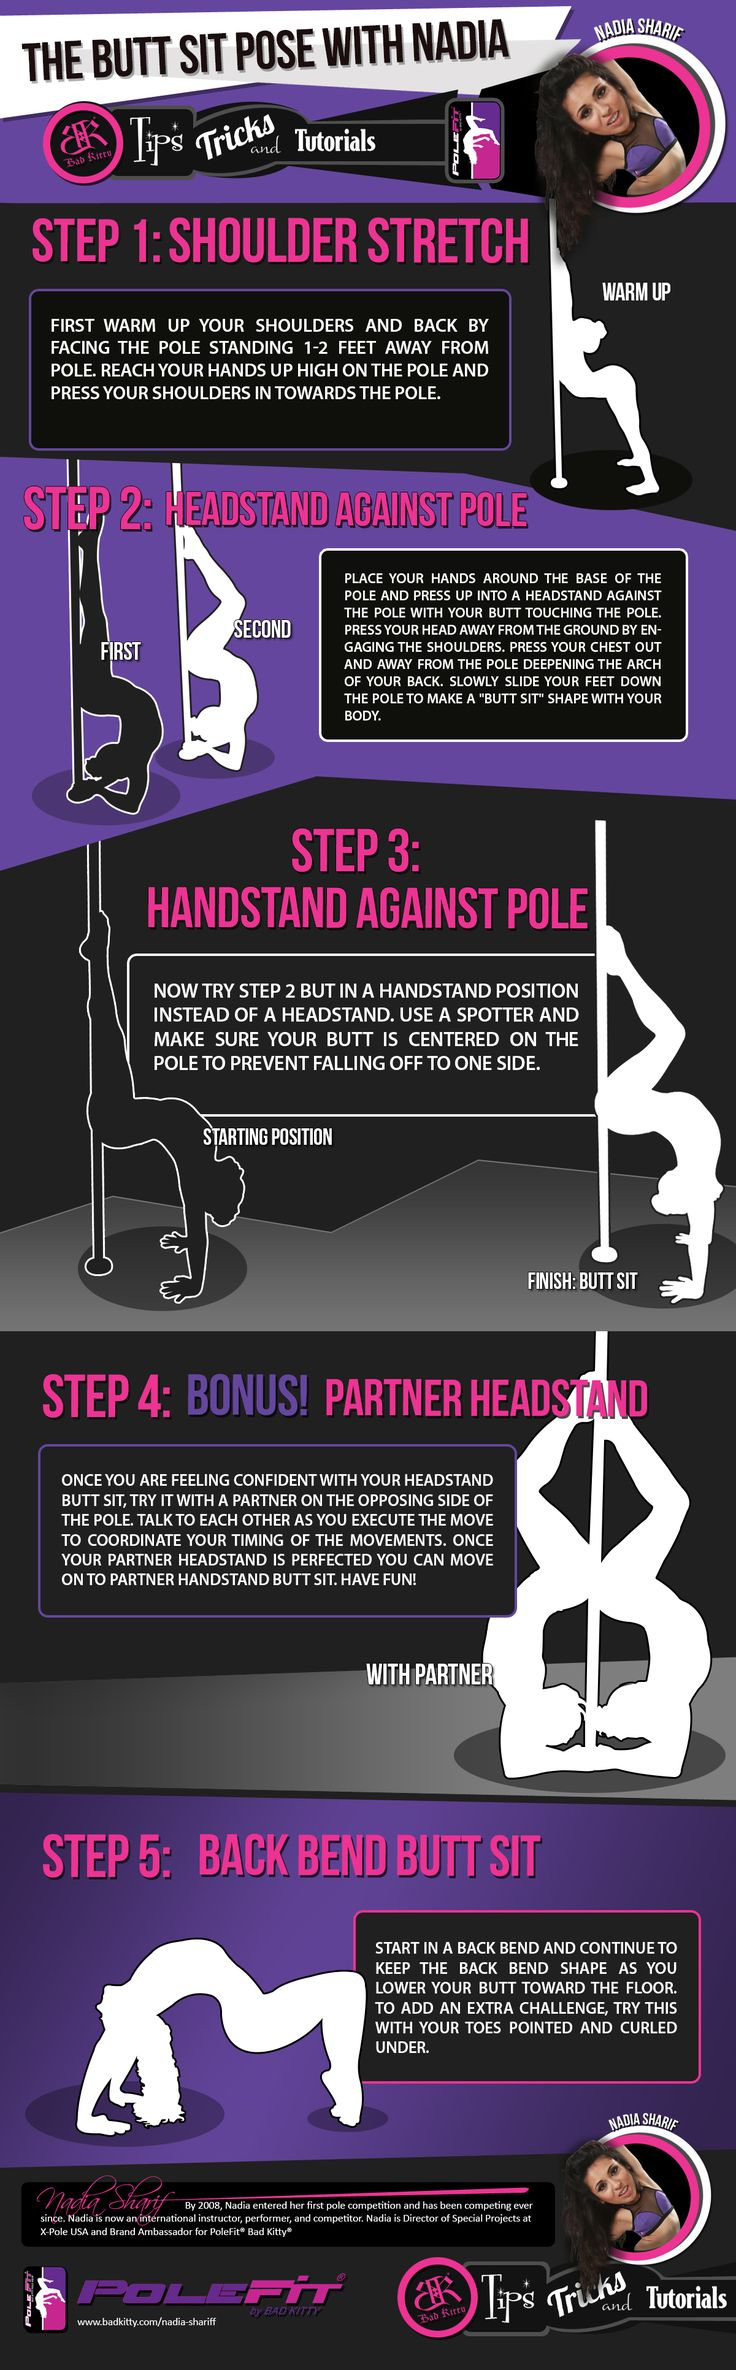 We teamed up with our Brand Ambassadors to bring you a series of tips and tricks to help you with your pole training. Here is Tips and Tricks #3: The Butt Sit pose with Nadia Sharif.